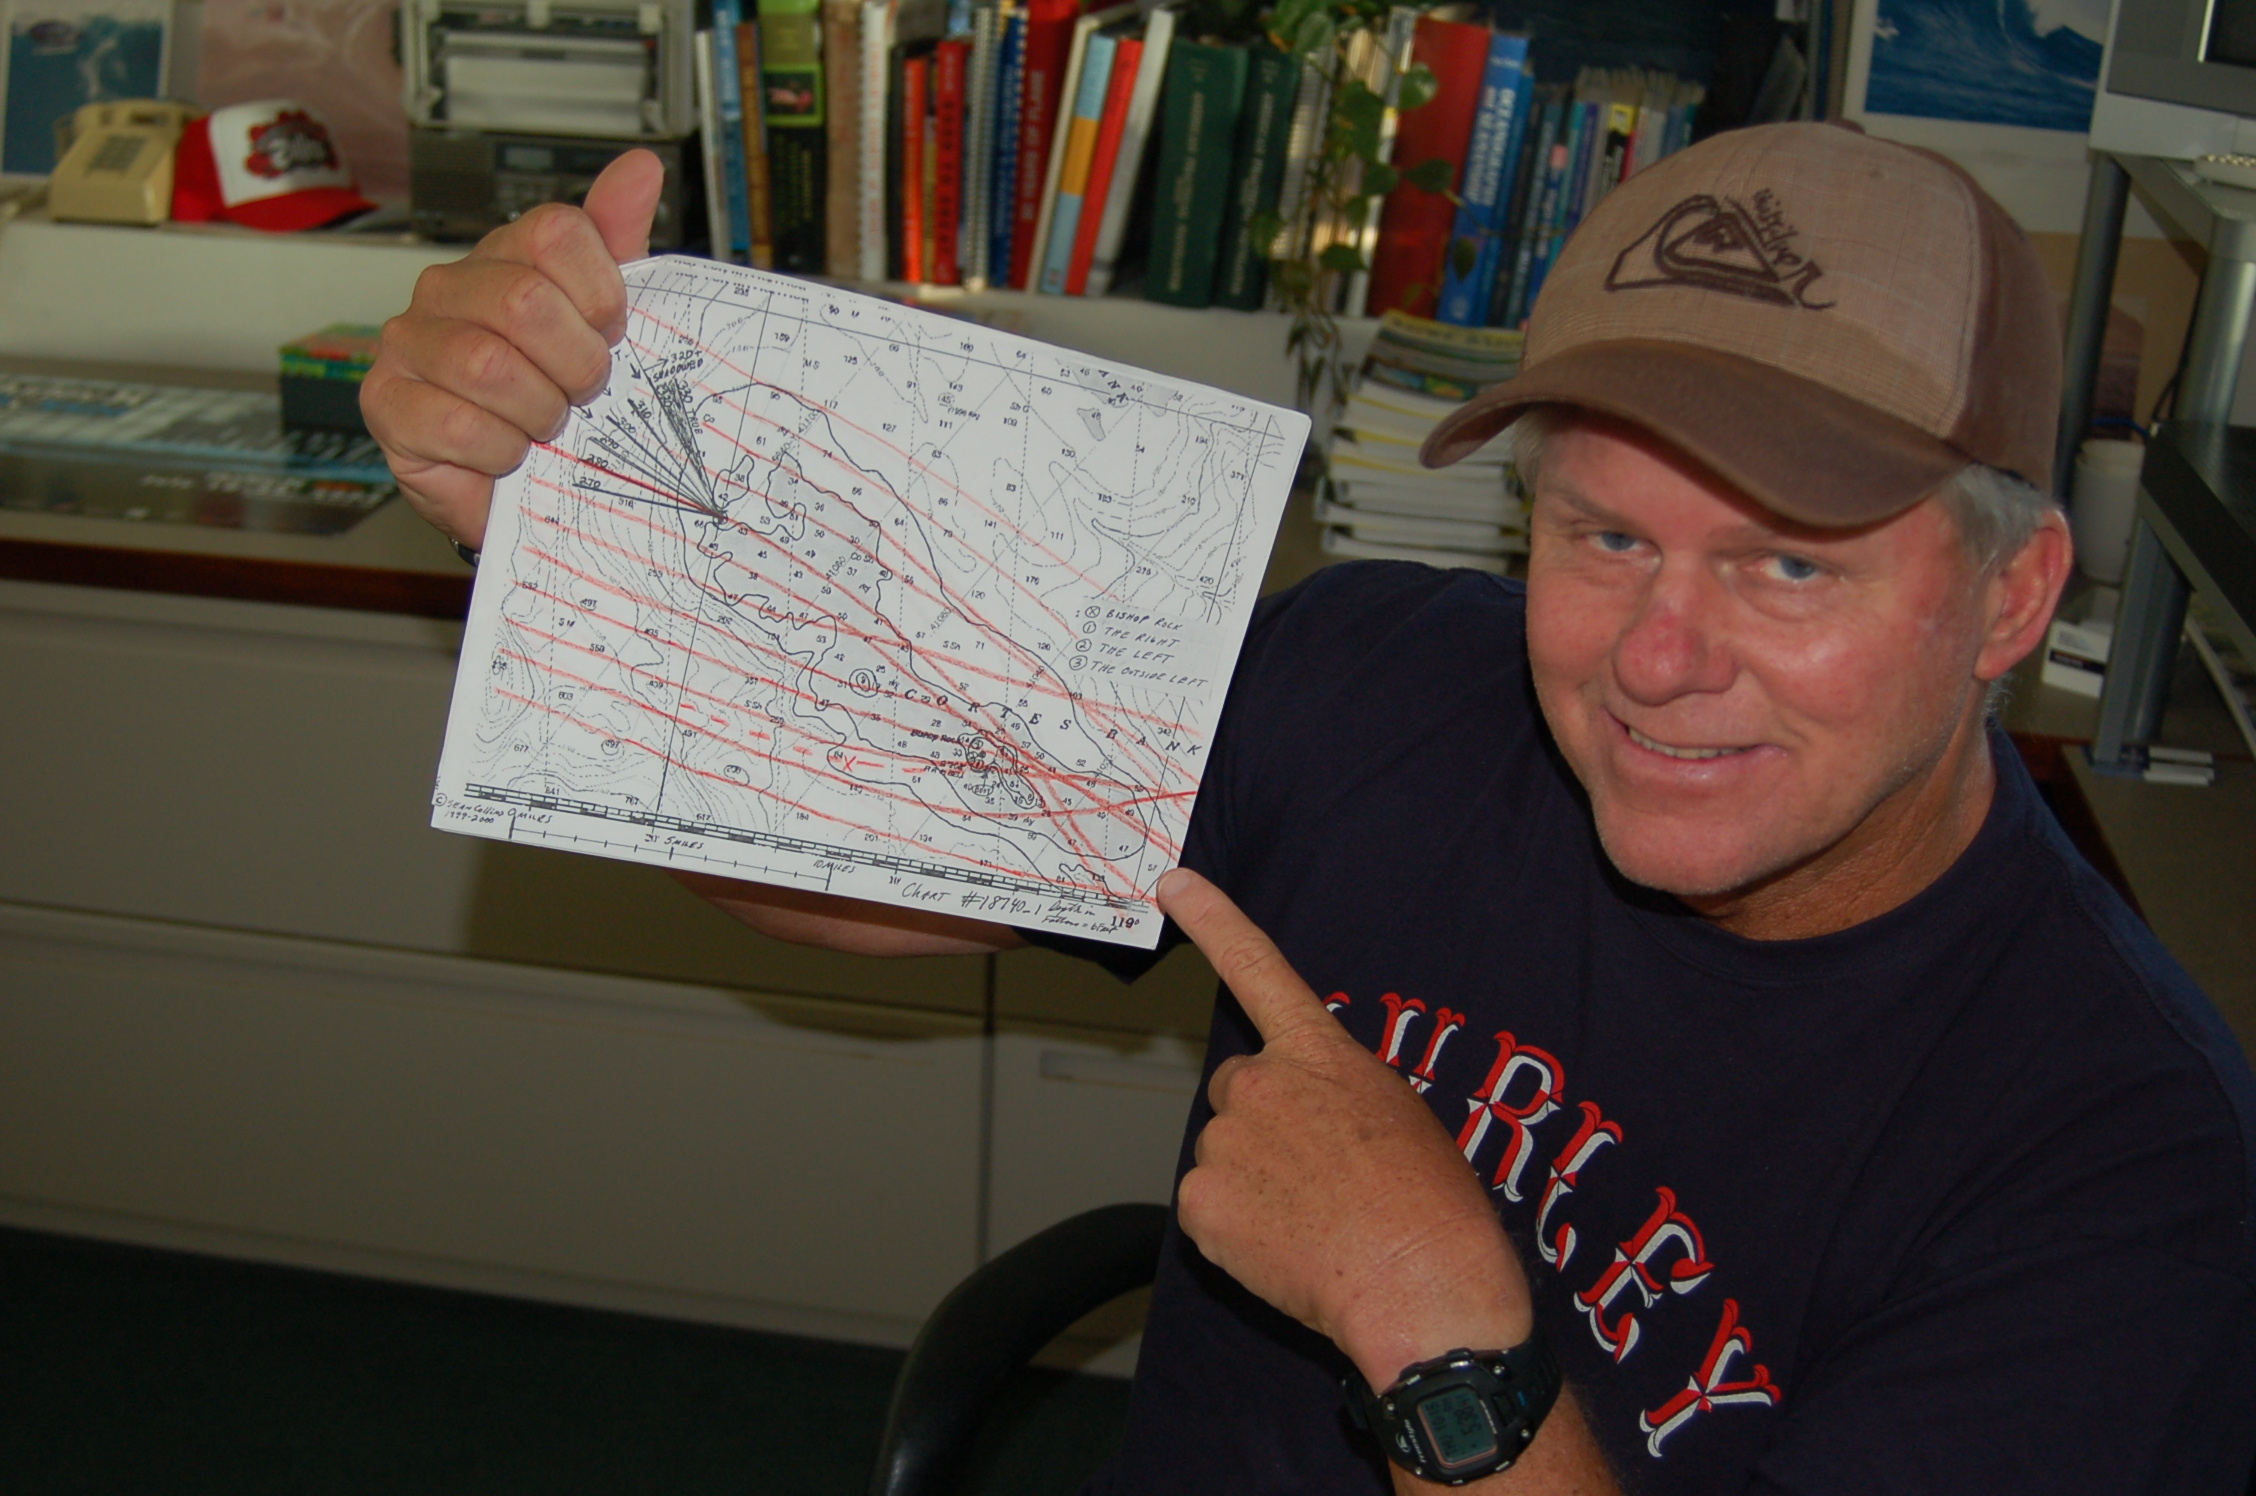 Sean Collins with a hand-drawn map he created years ago to calculate the swell, reef, and bathymetry of the Cortes Bank, a seamount 100 miles off the coast of California where huge waves are surfed. Photo by Chris Dixon